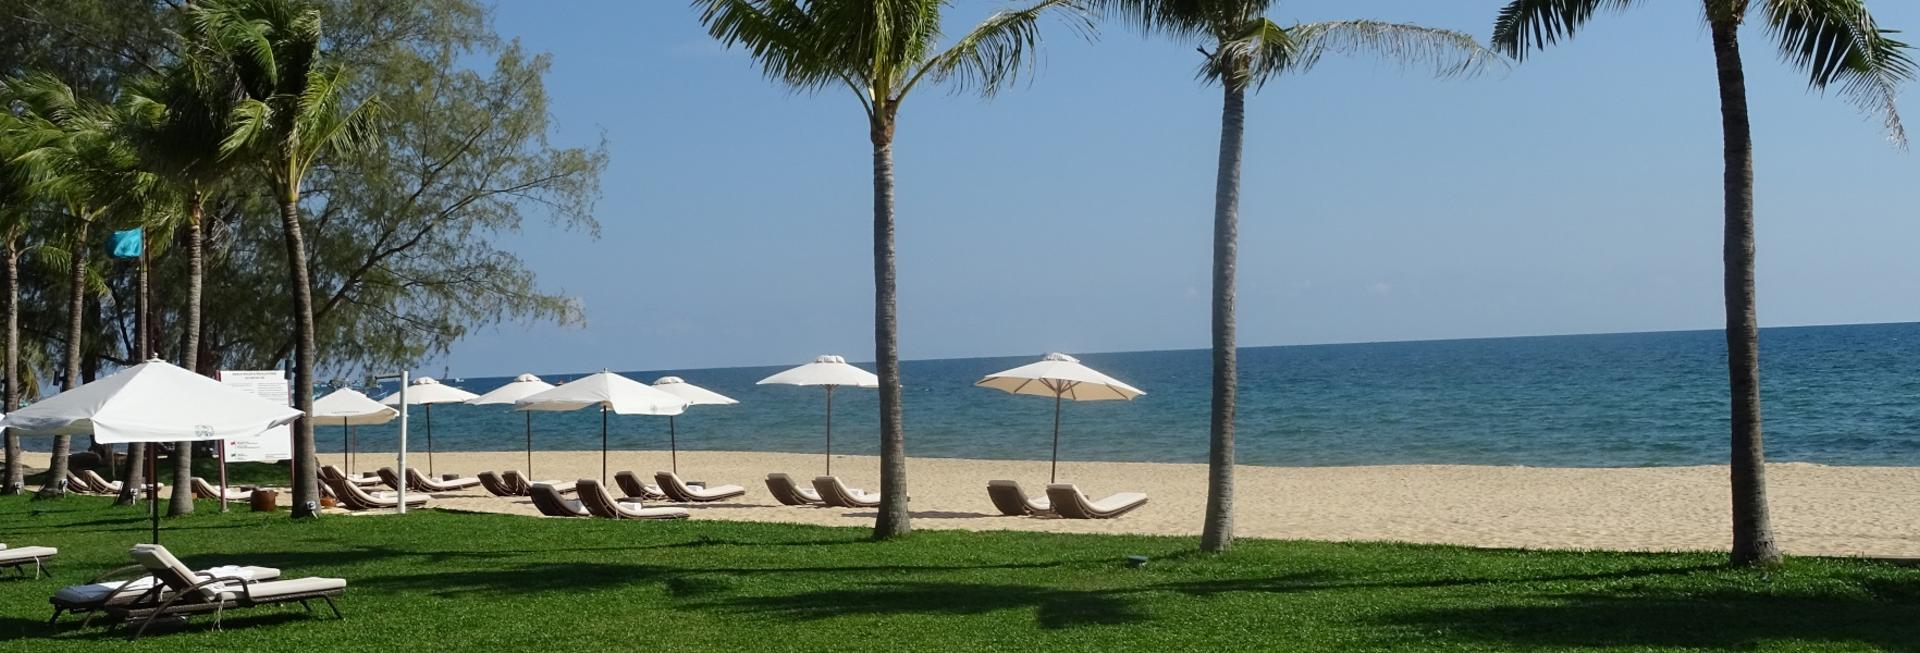 The Shells Resort & Spa, Phu Quoc